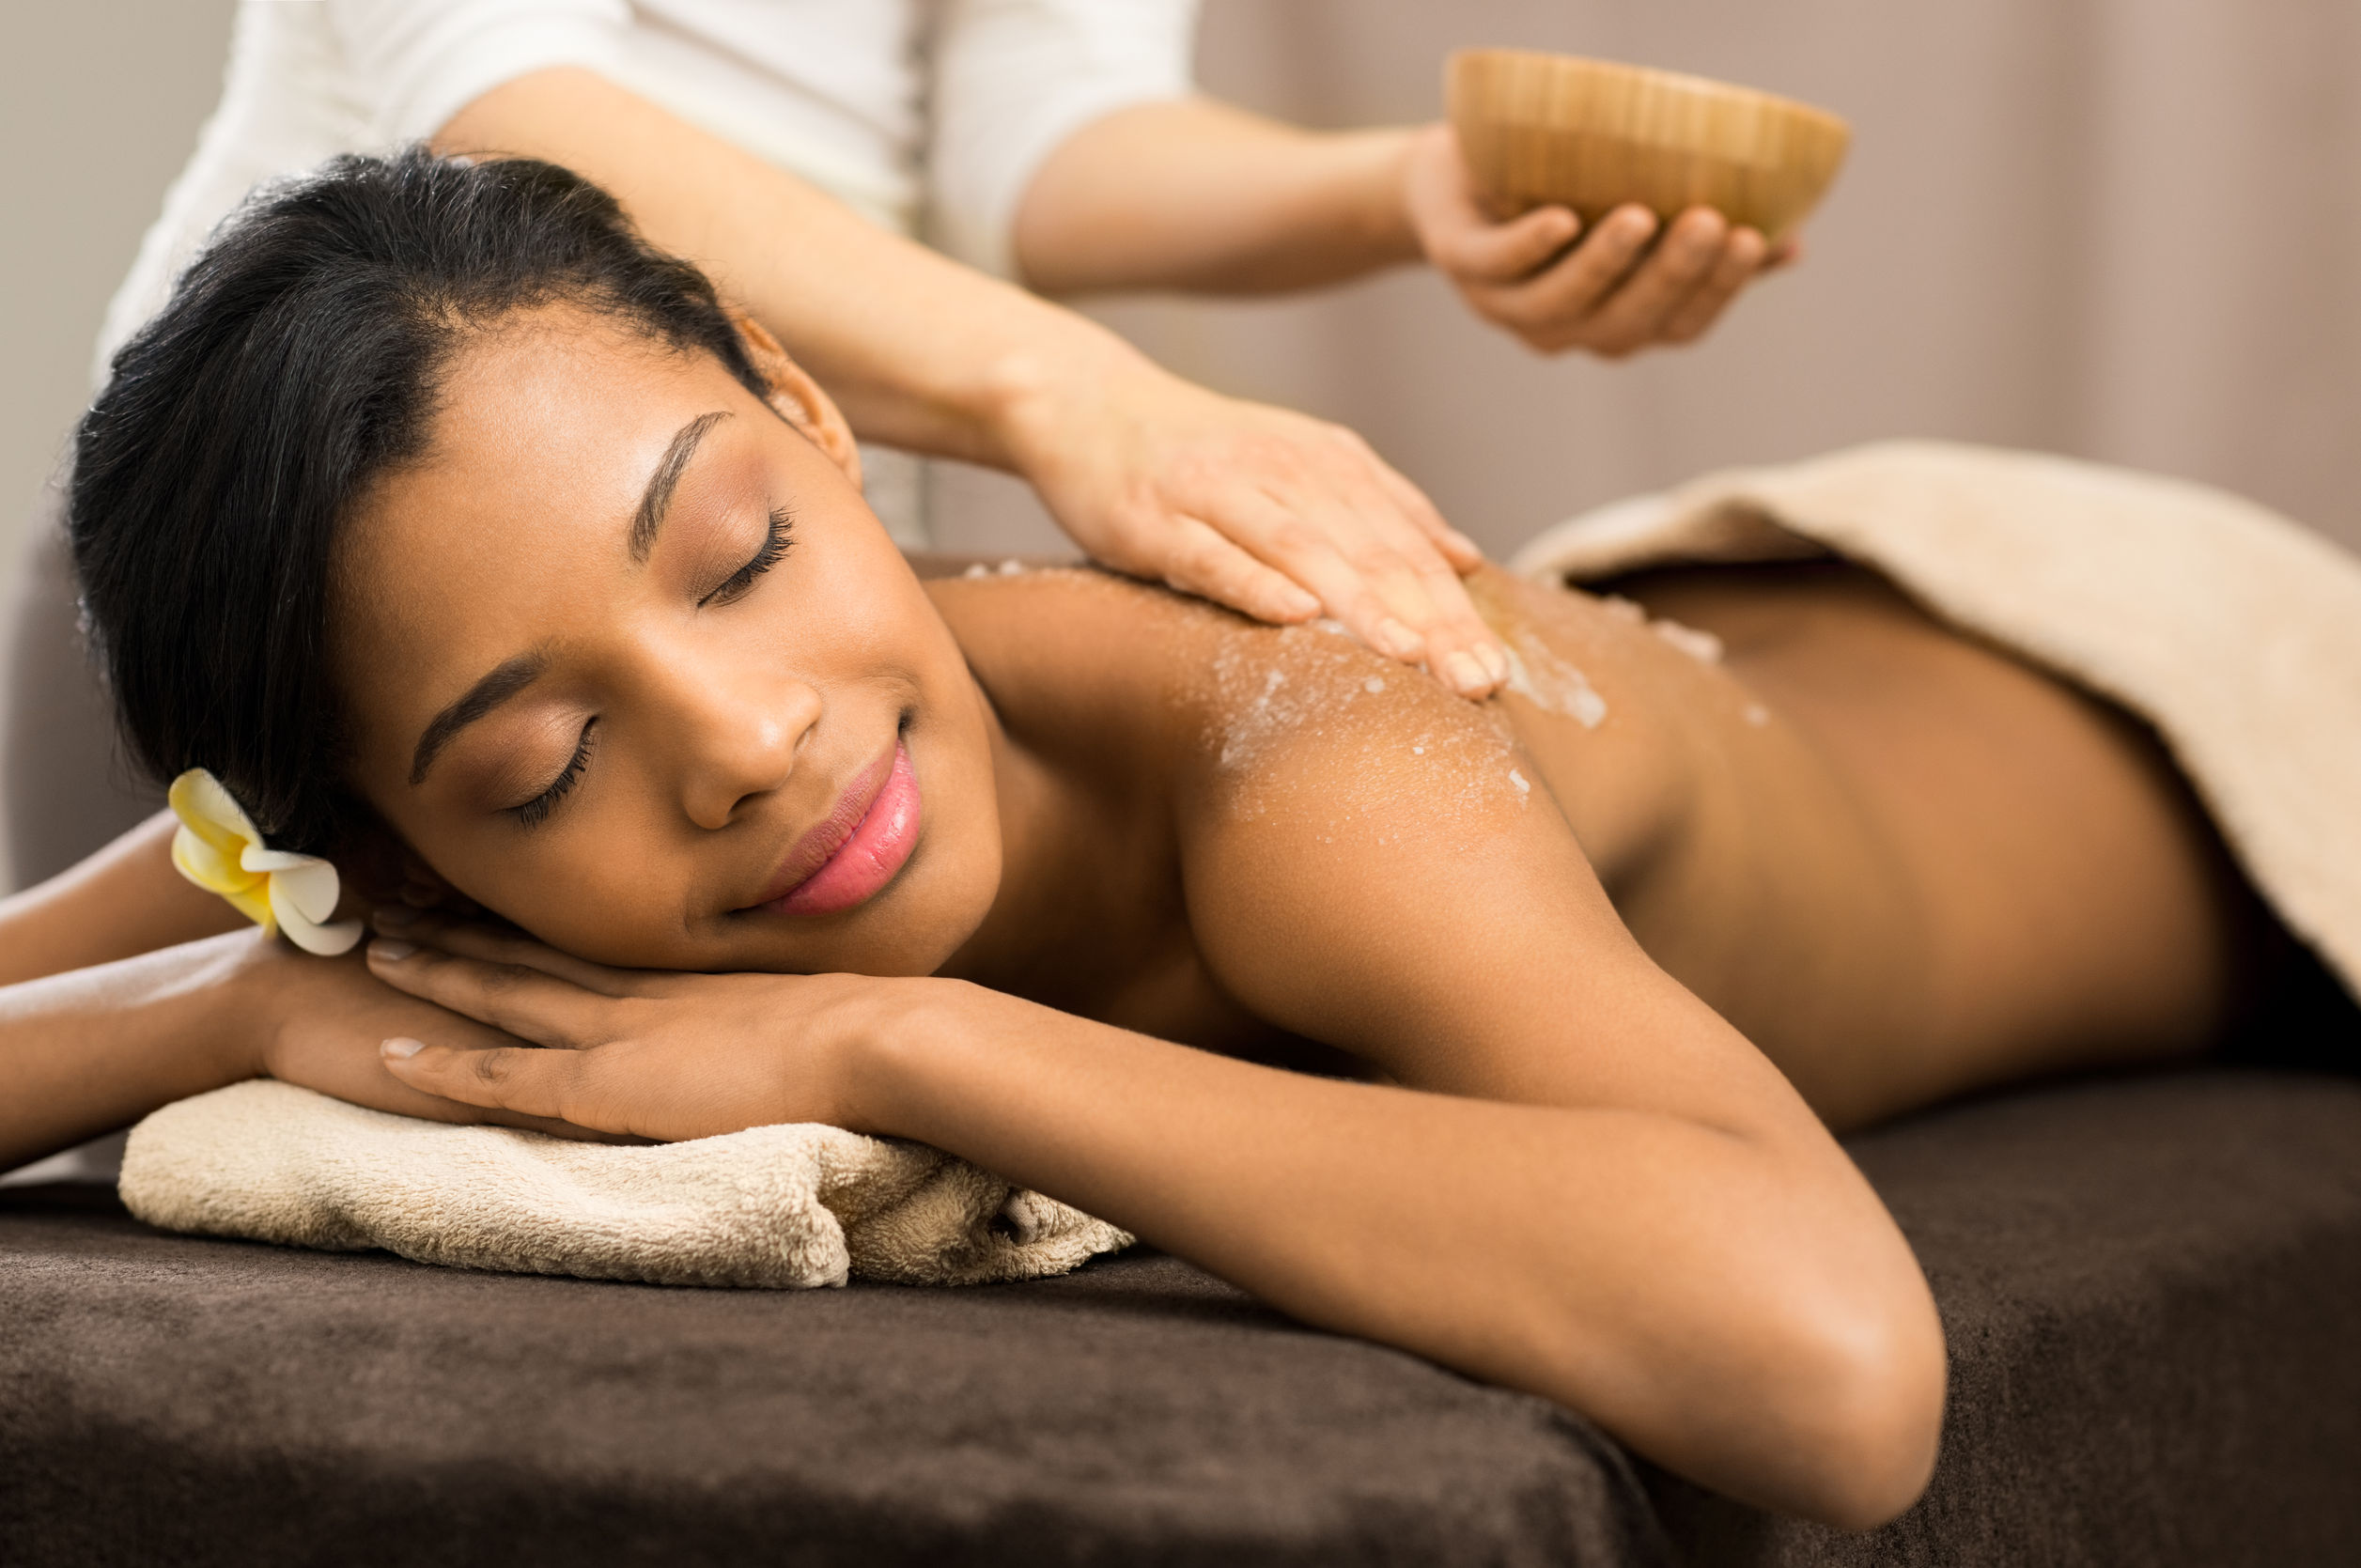 36953086 - spa therapist applying scrub salt on young woman back at salon  spa